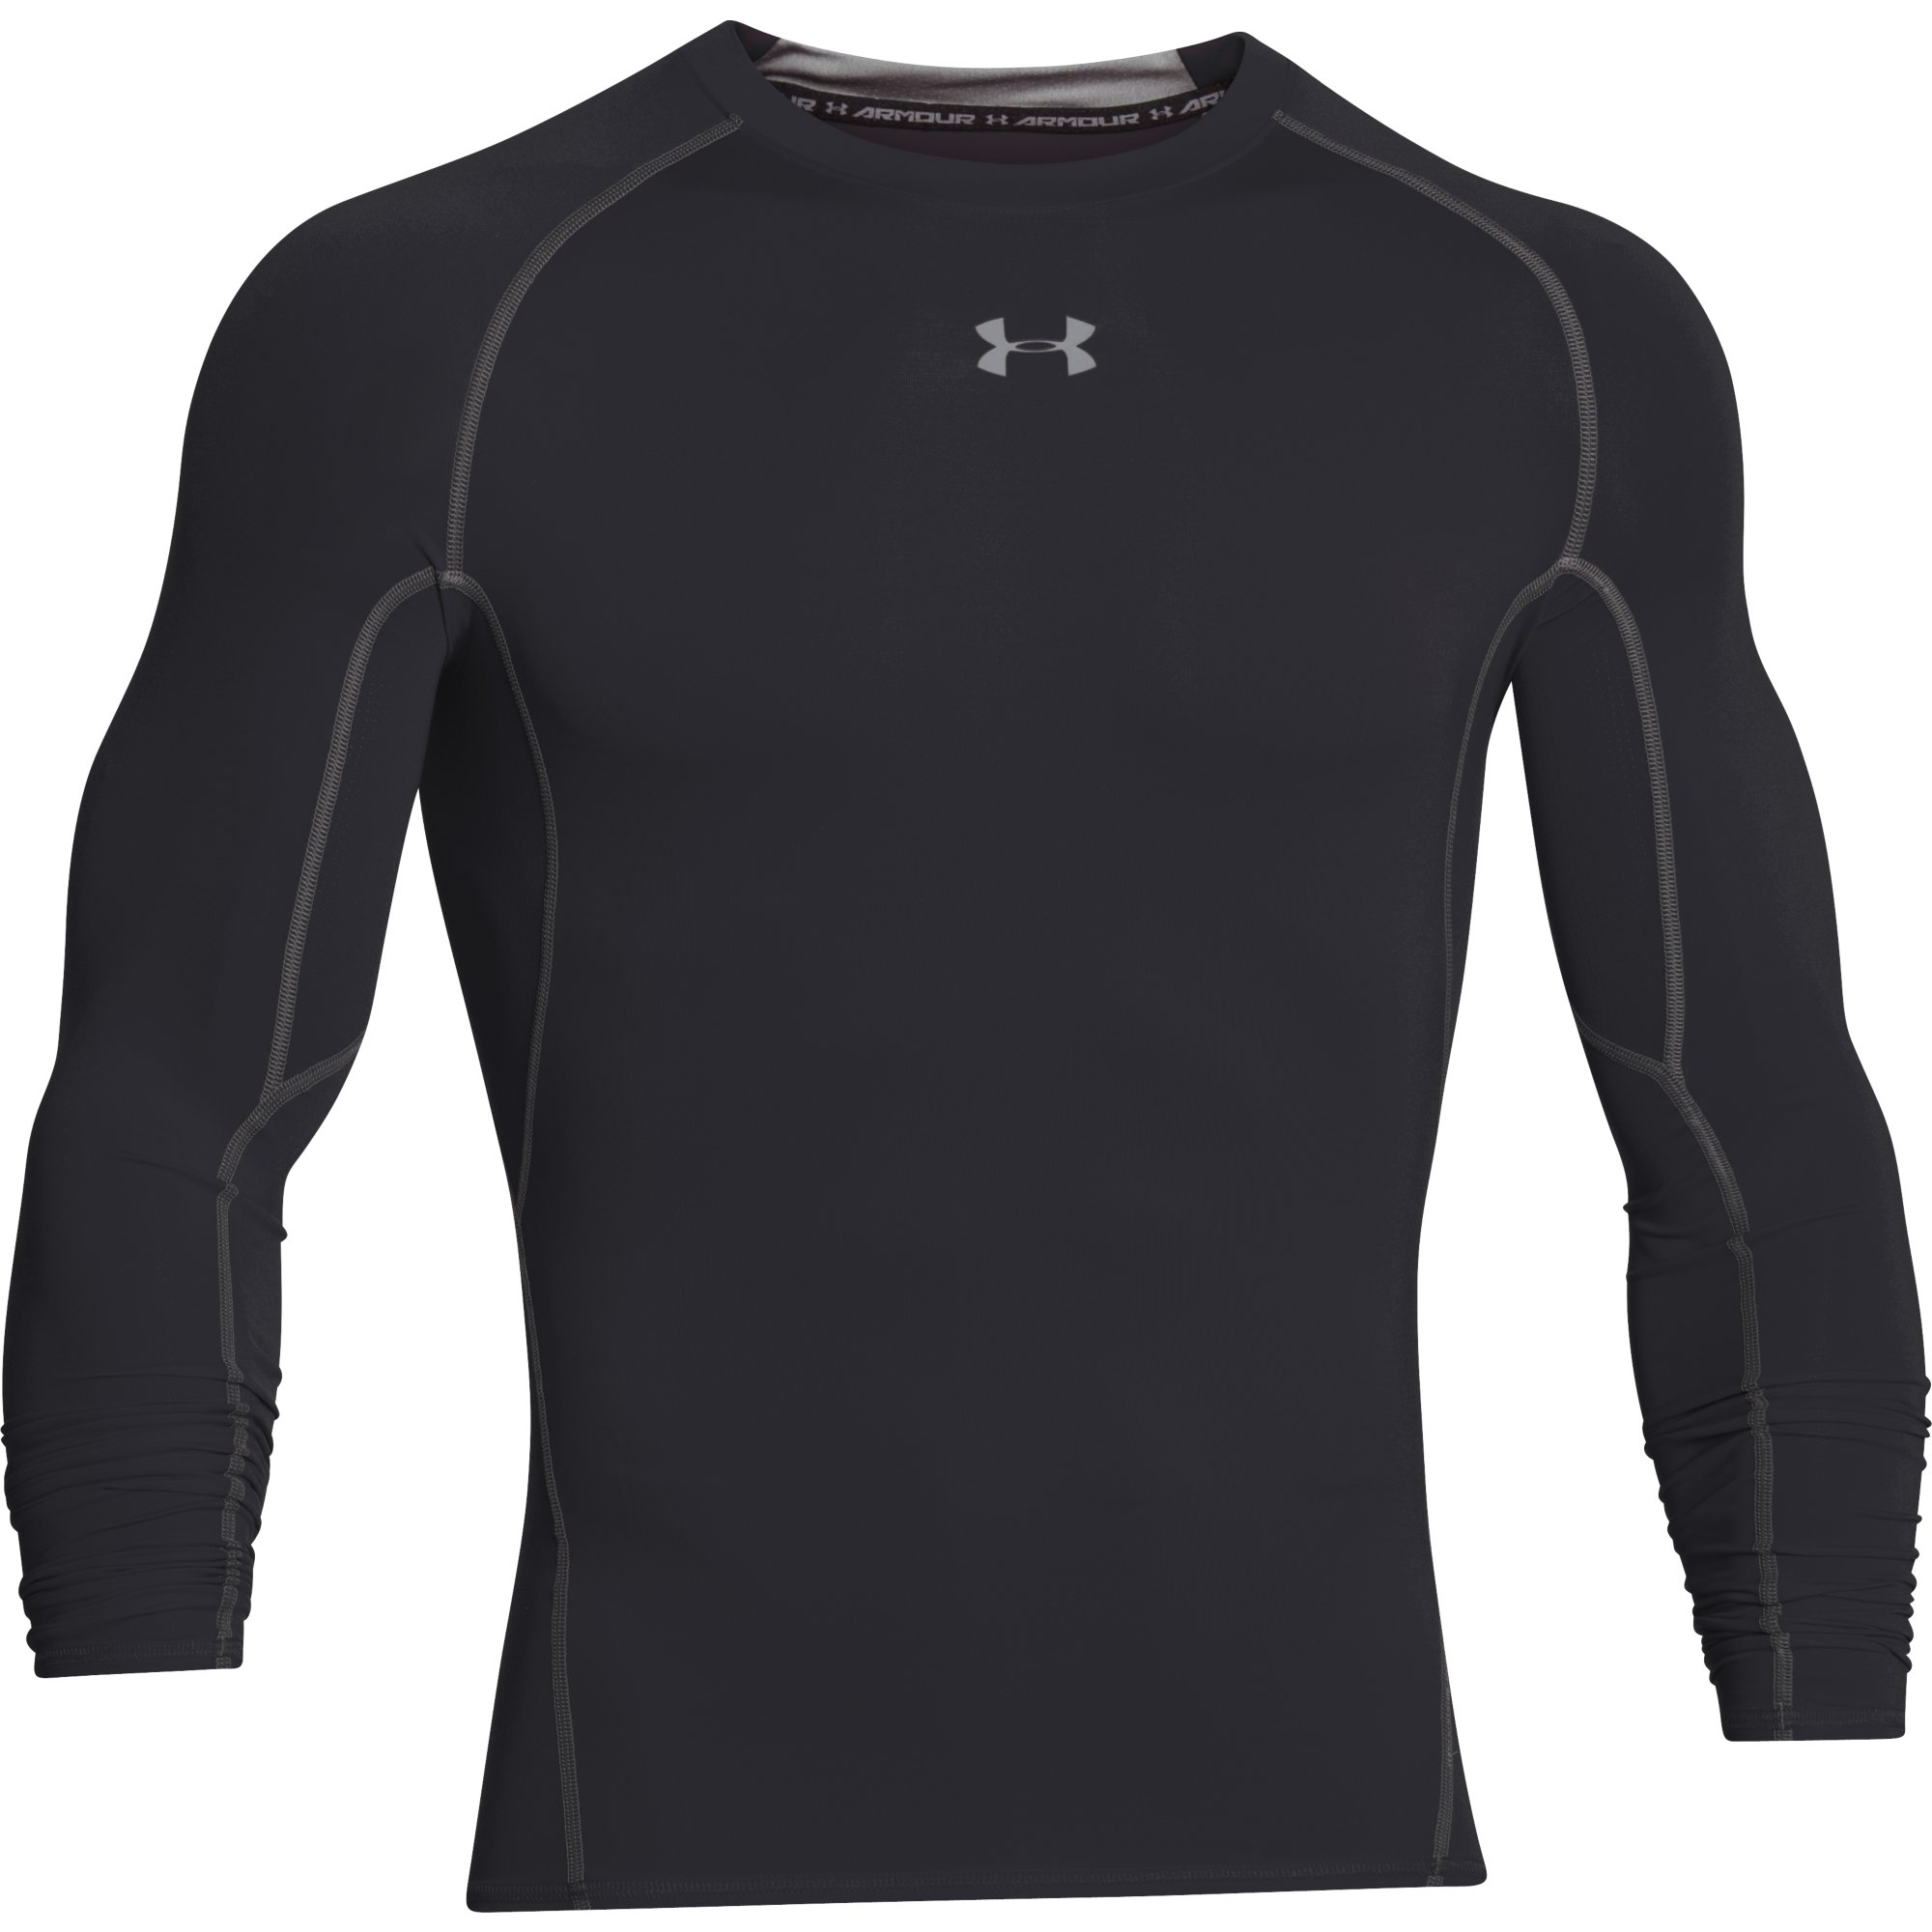 8b22d8ca9 Wiggle | Under Armour Heatgear Armour Long Sleeve Compression Tee |  Compression Tops